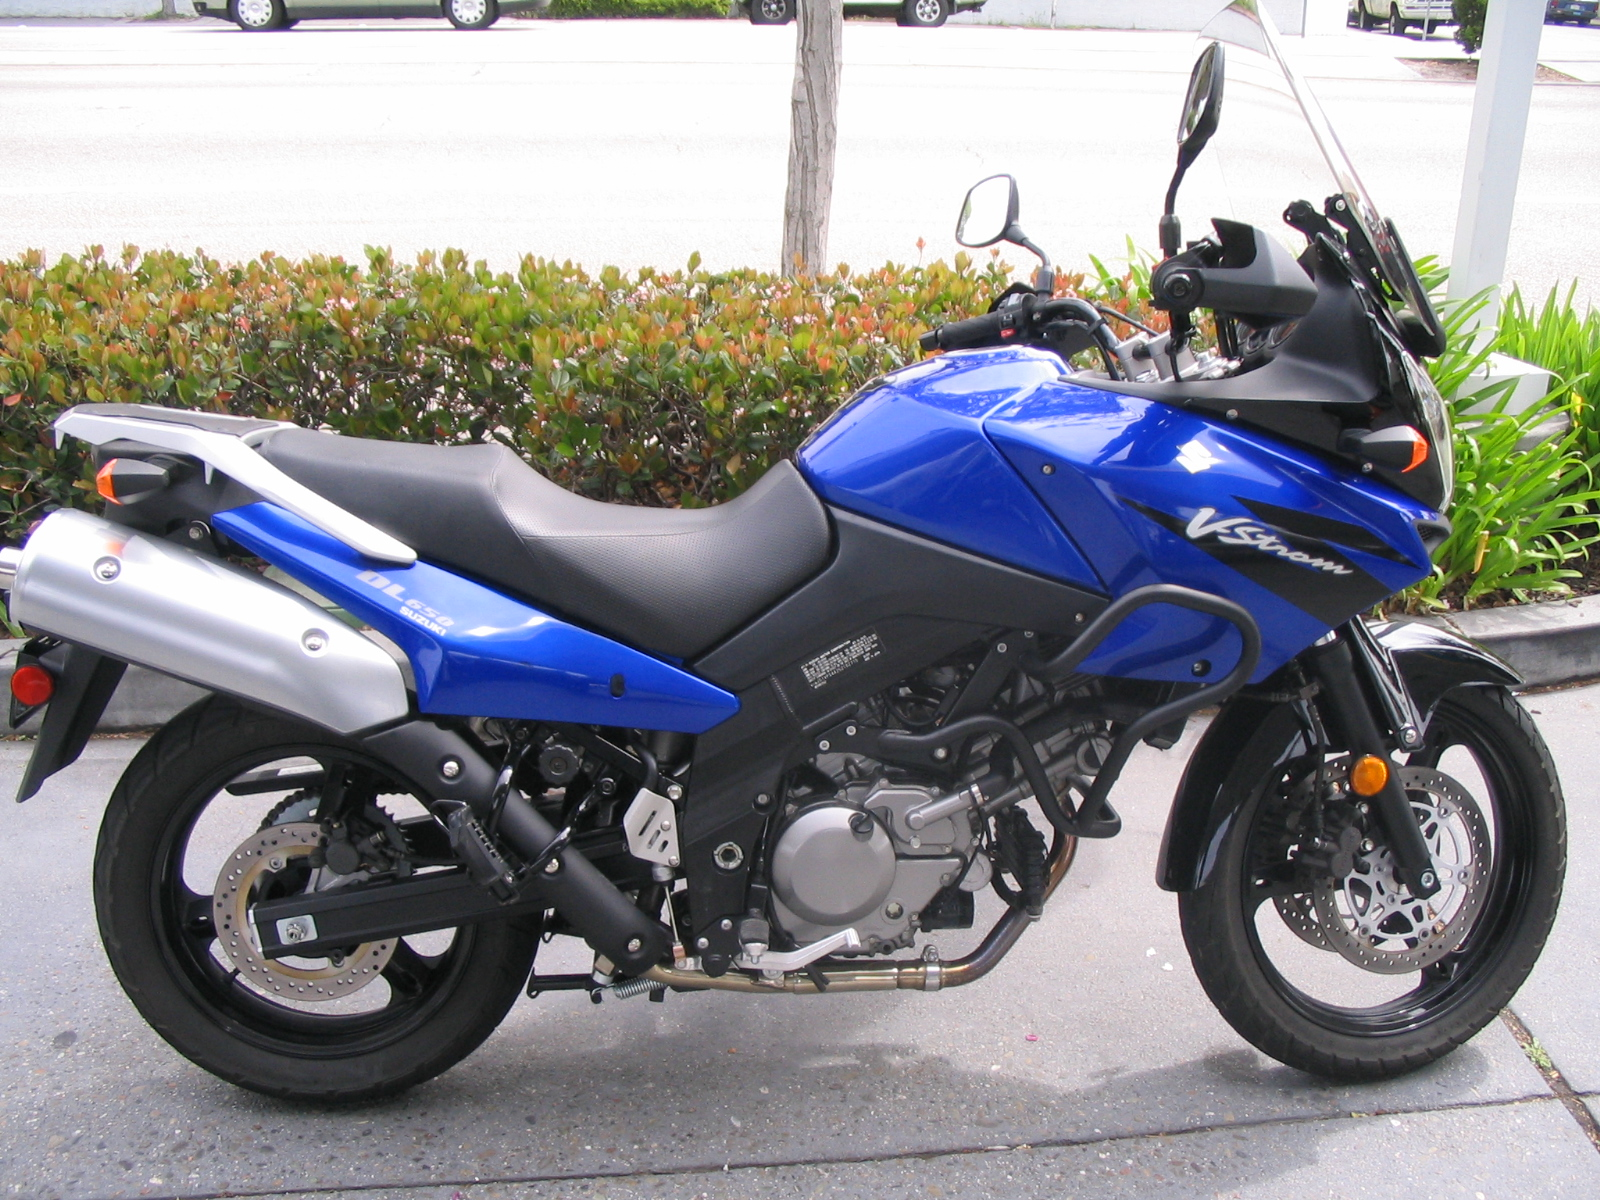 File:Suzuki vstrom dl650 motorcycle.jpg  Wikipedia